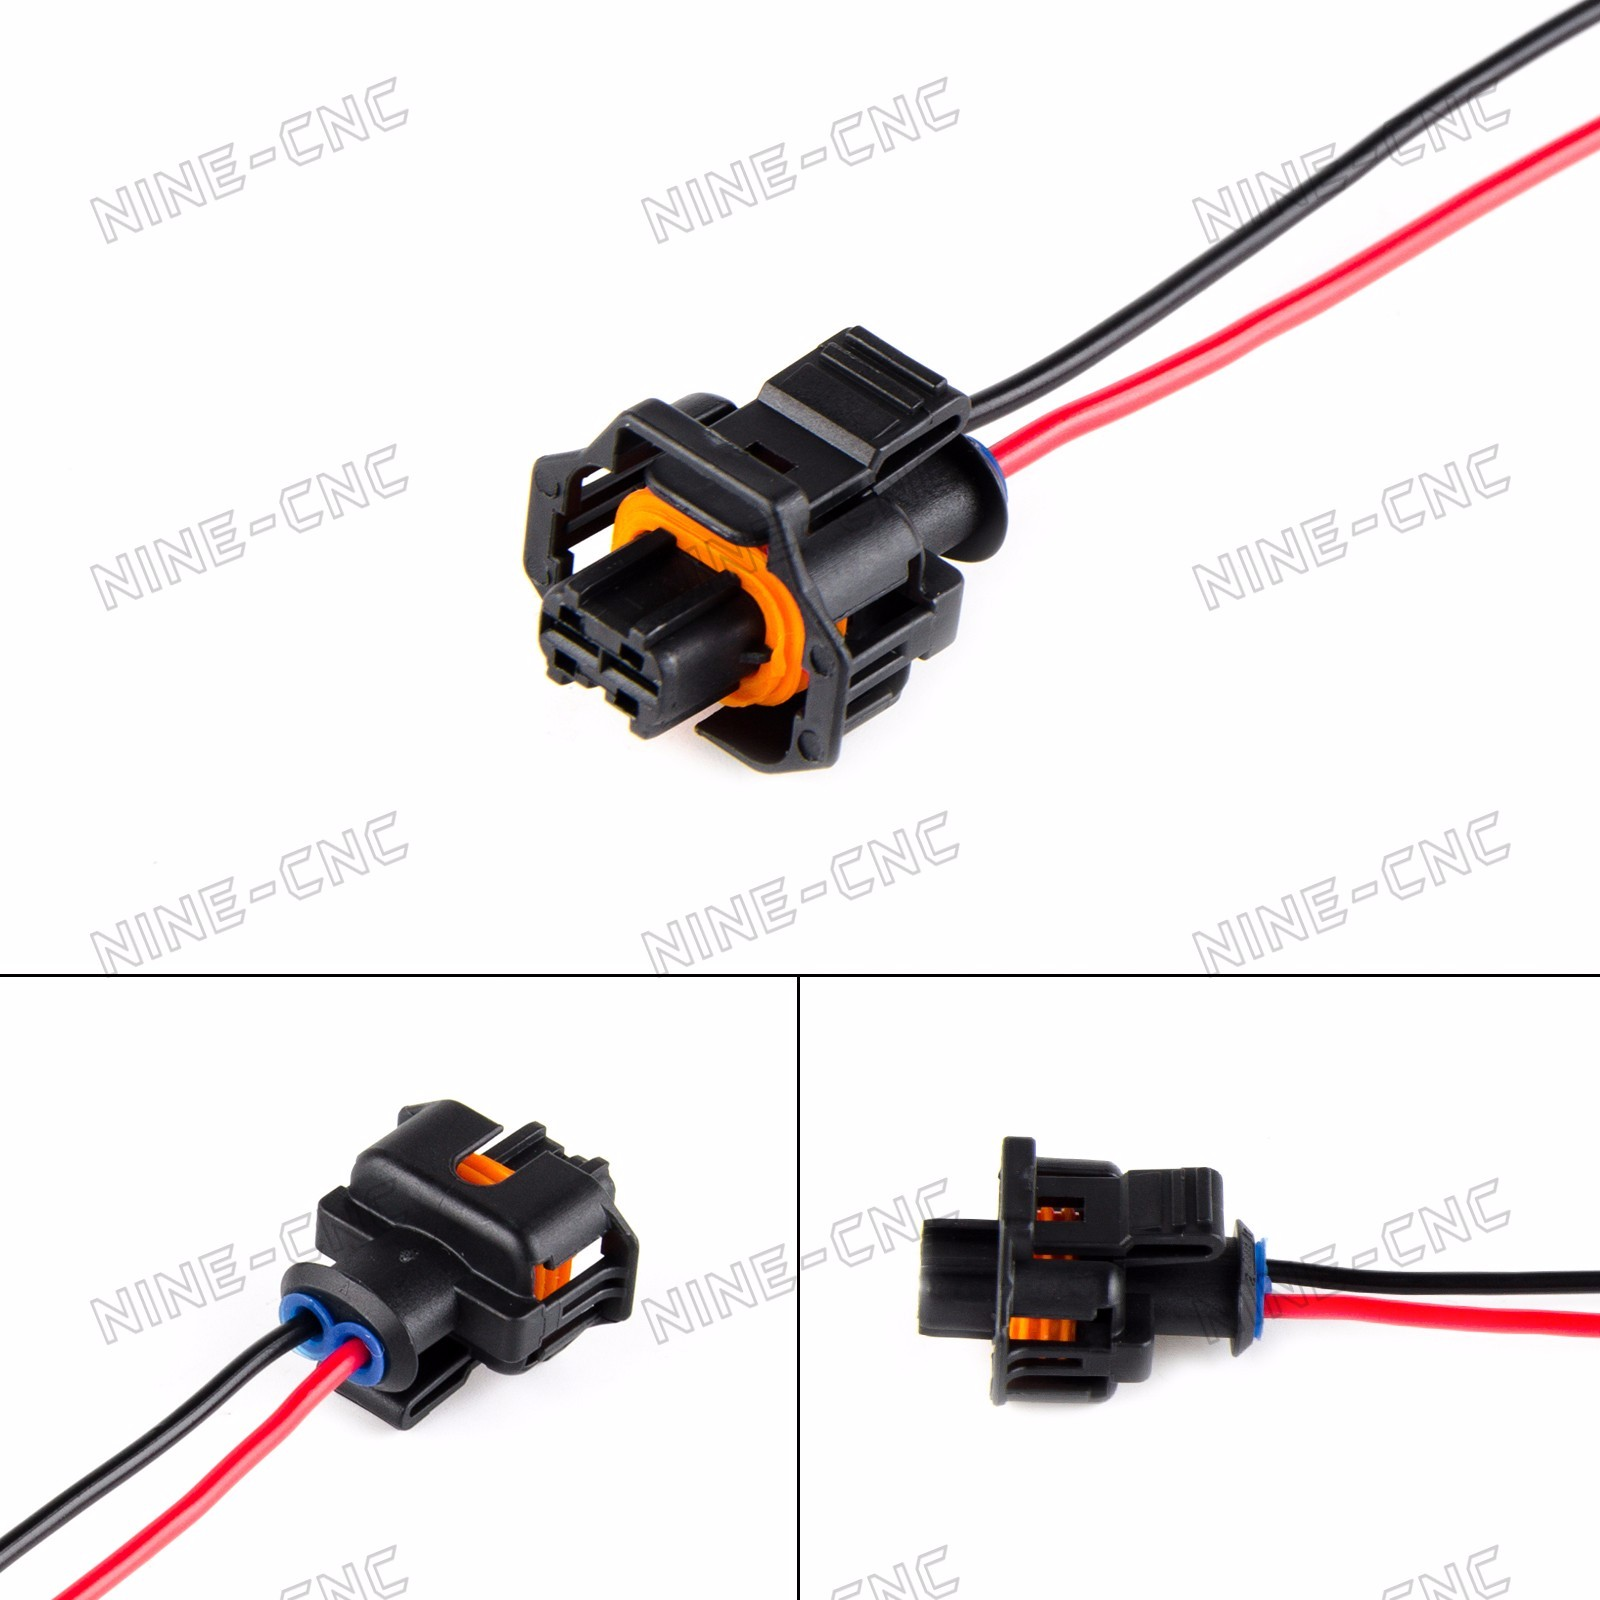 Cnc Wire Loom Wiring Harness Diesel Fuel Injector Plug Connector For Vauxhall Vectra Cdti 1600x1600